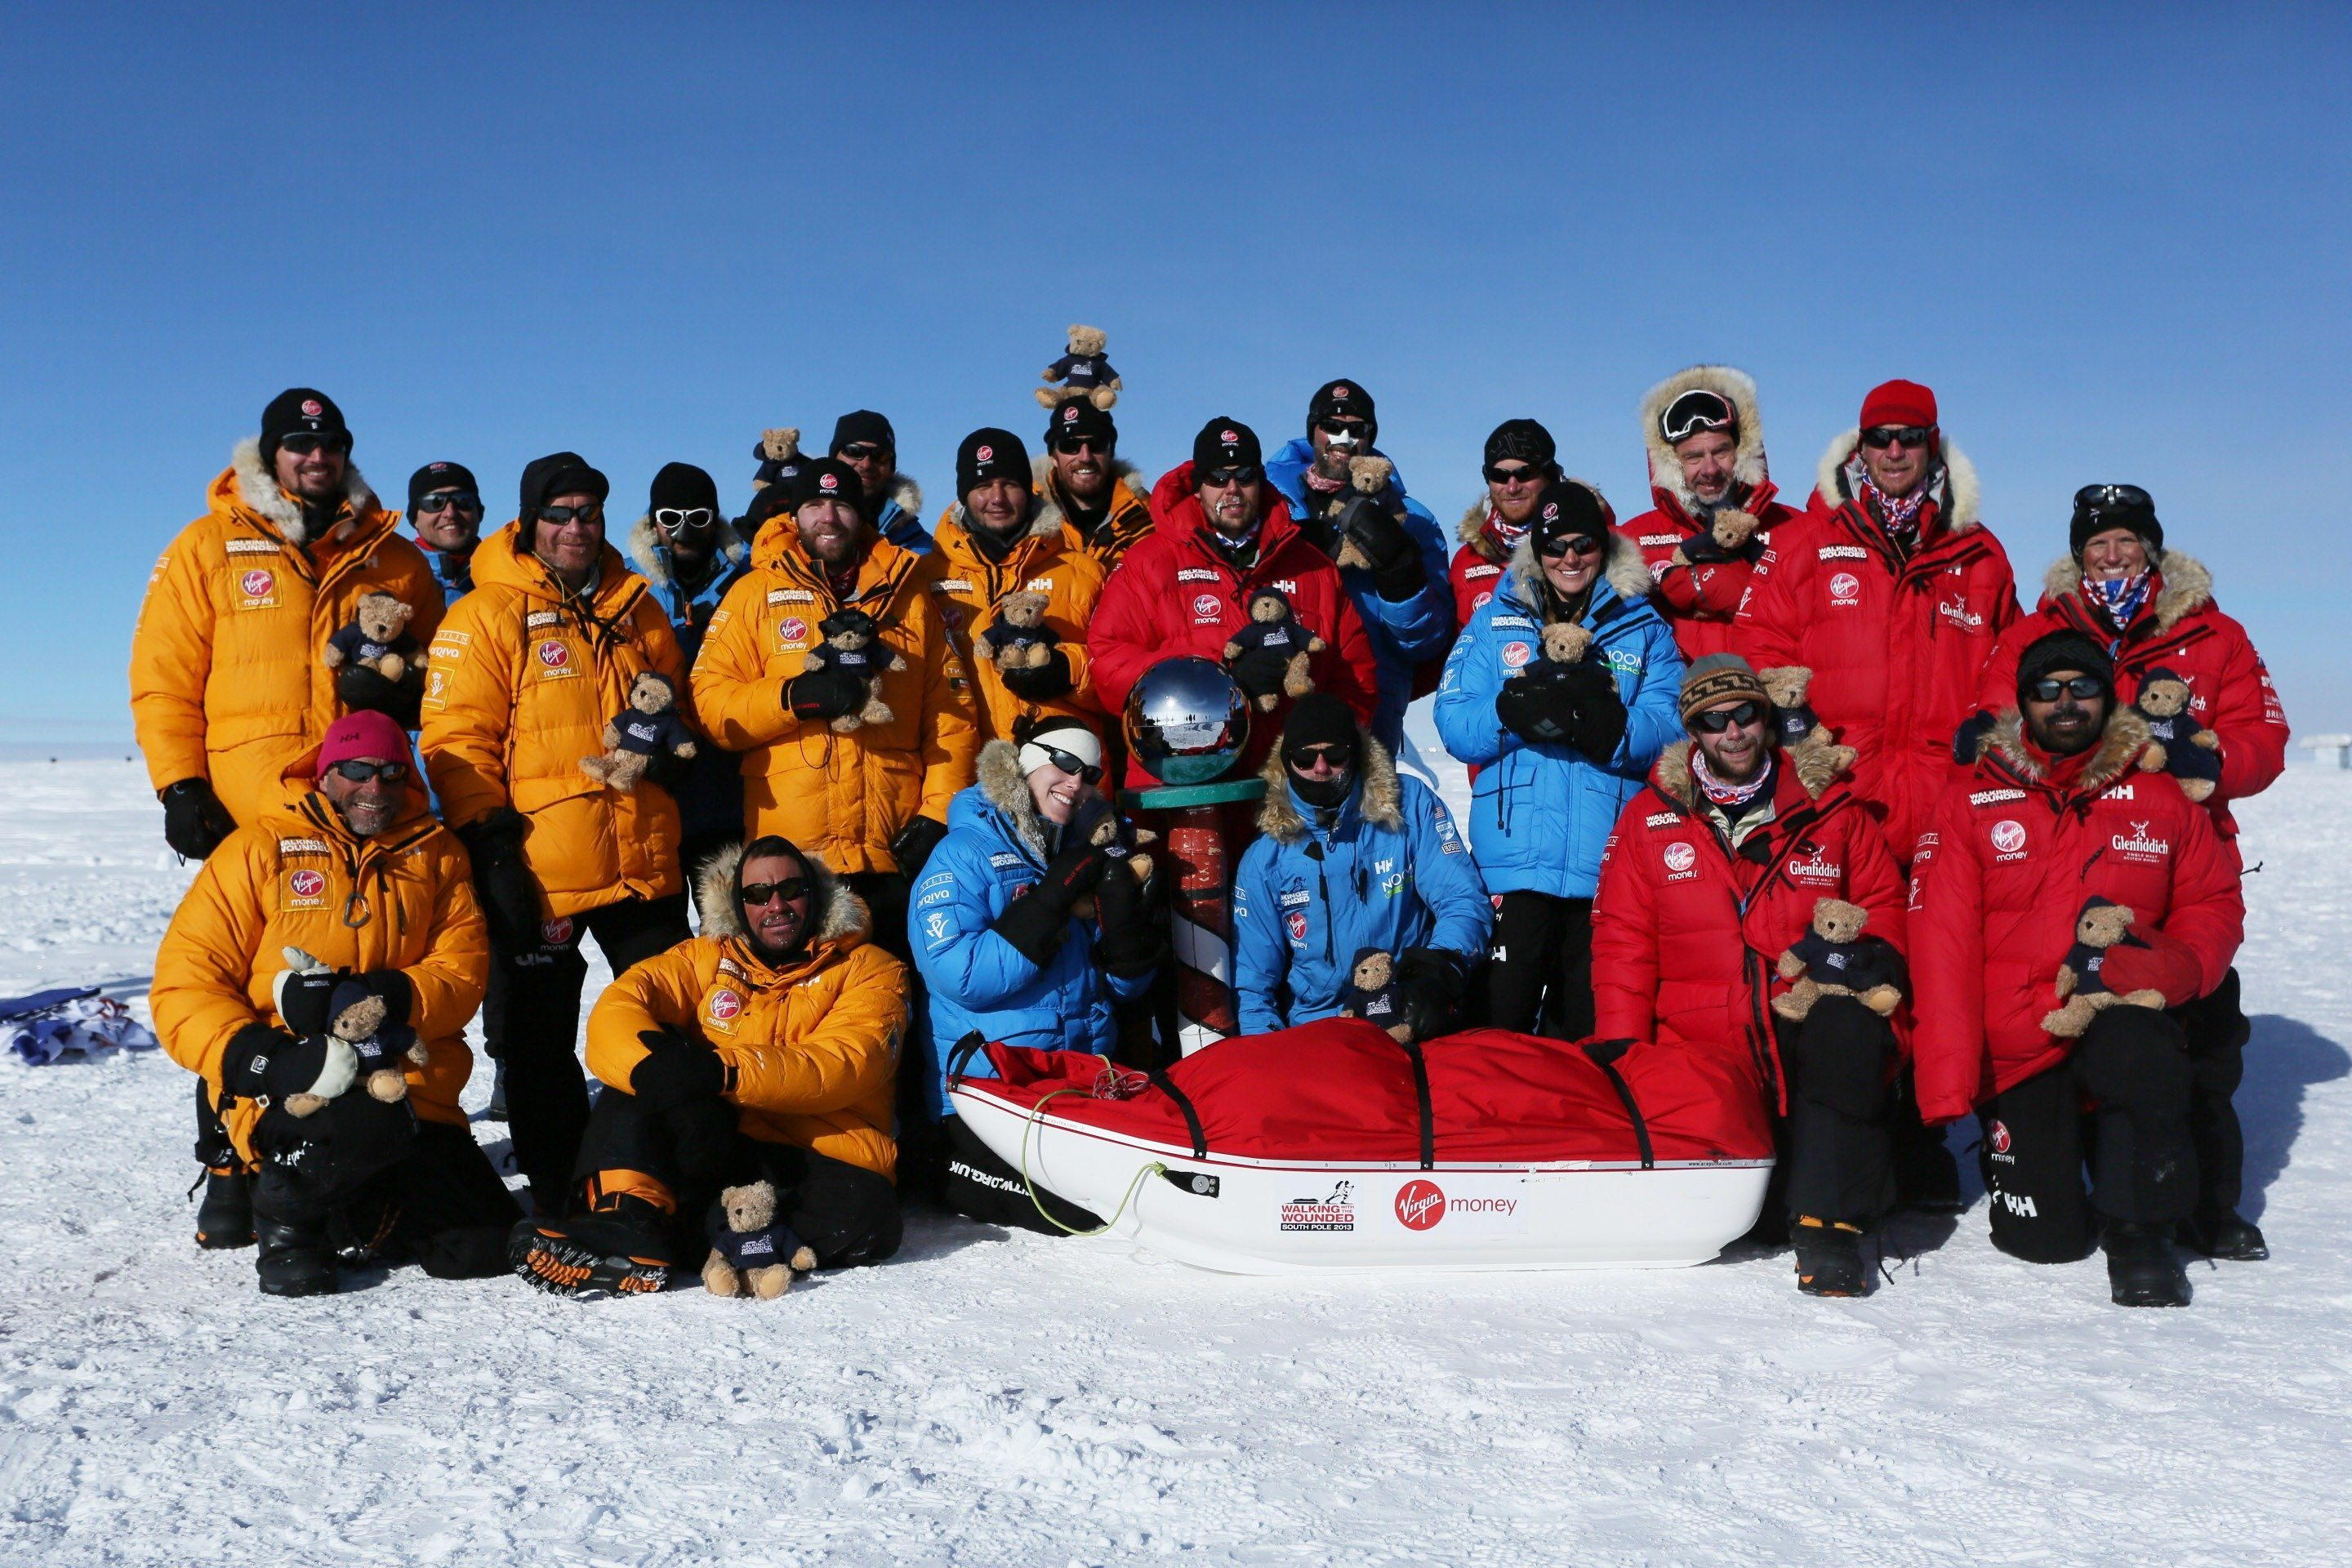 Friday the 13th Walking with the Wounded, Prince Harry South Pole